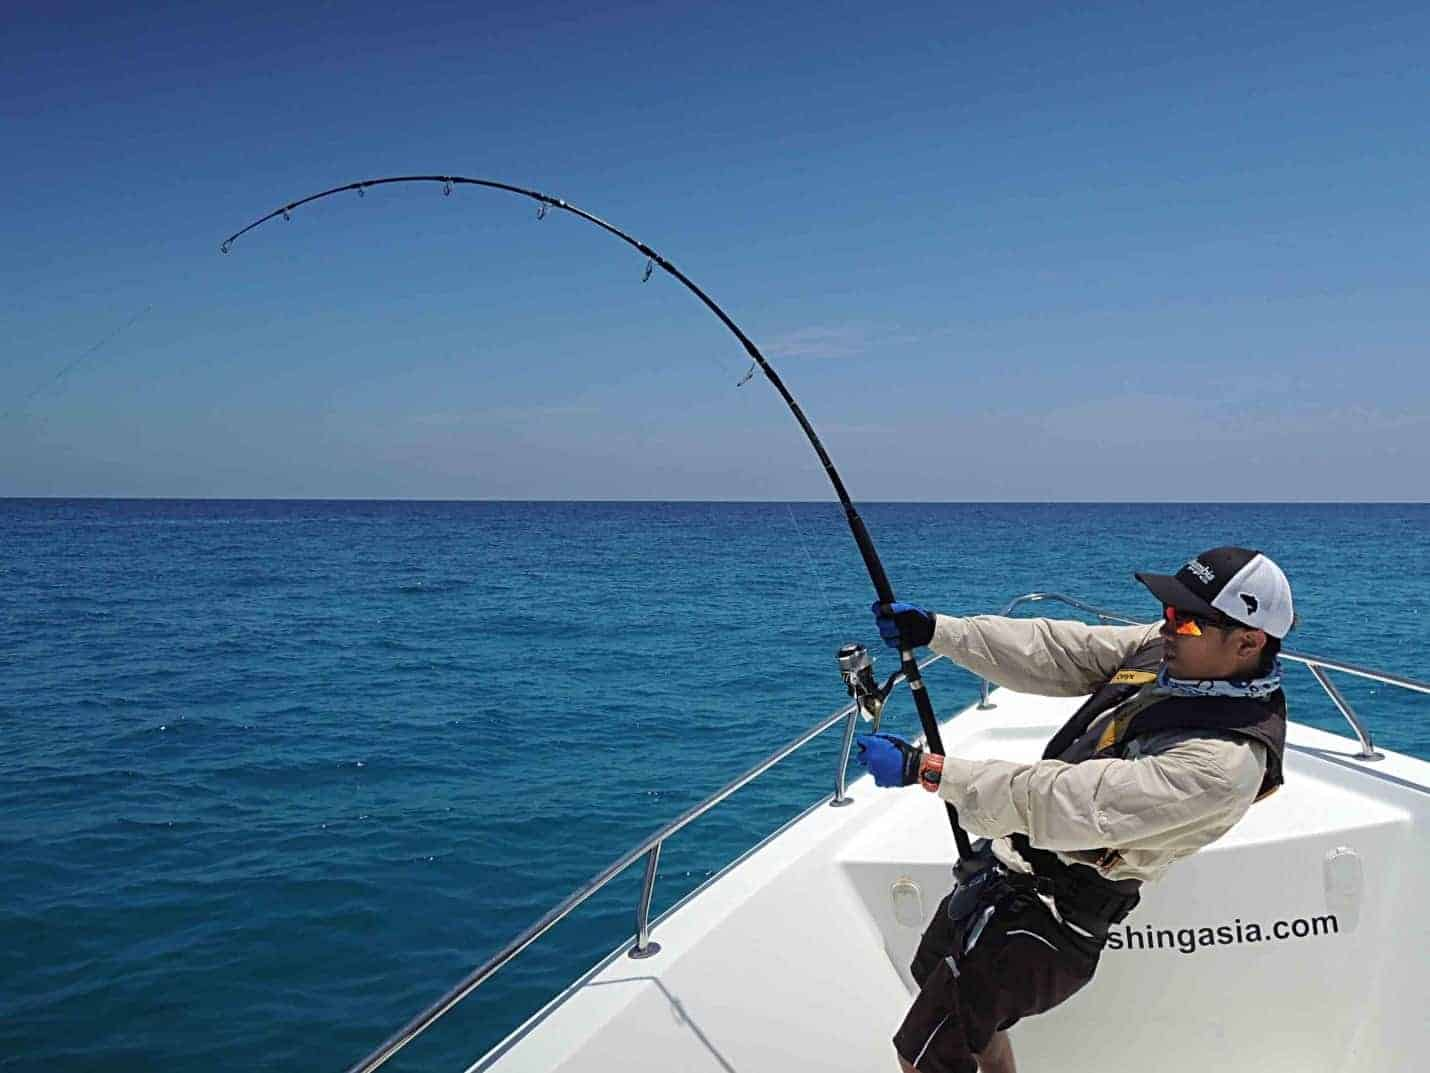 saltwater fishing gear 10 Saltwater Fishing Tips That Will Make Fishing Experience Great